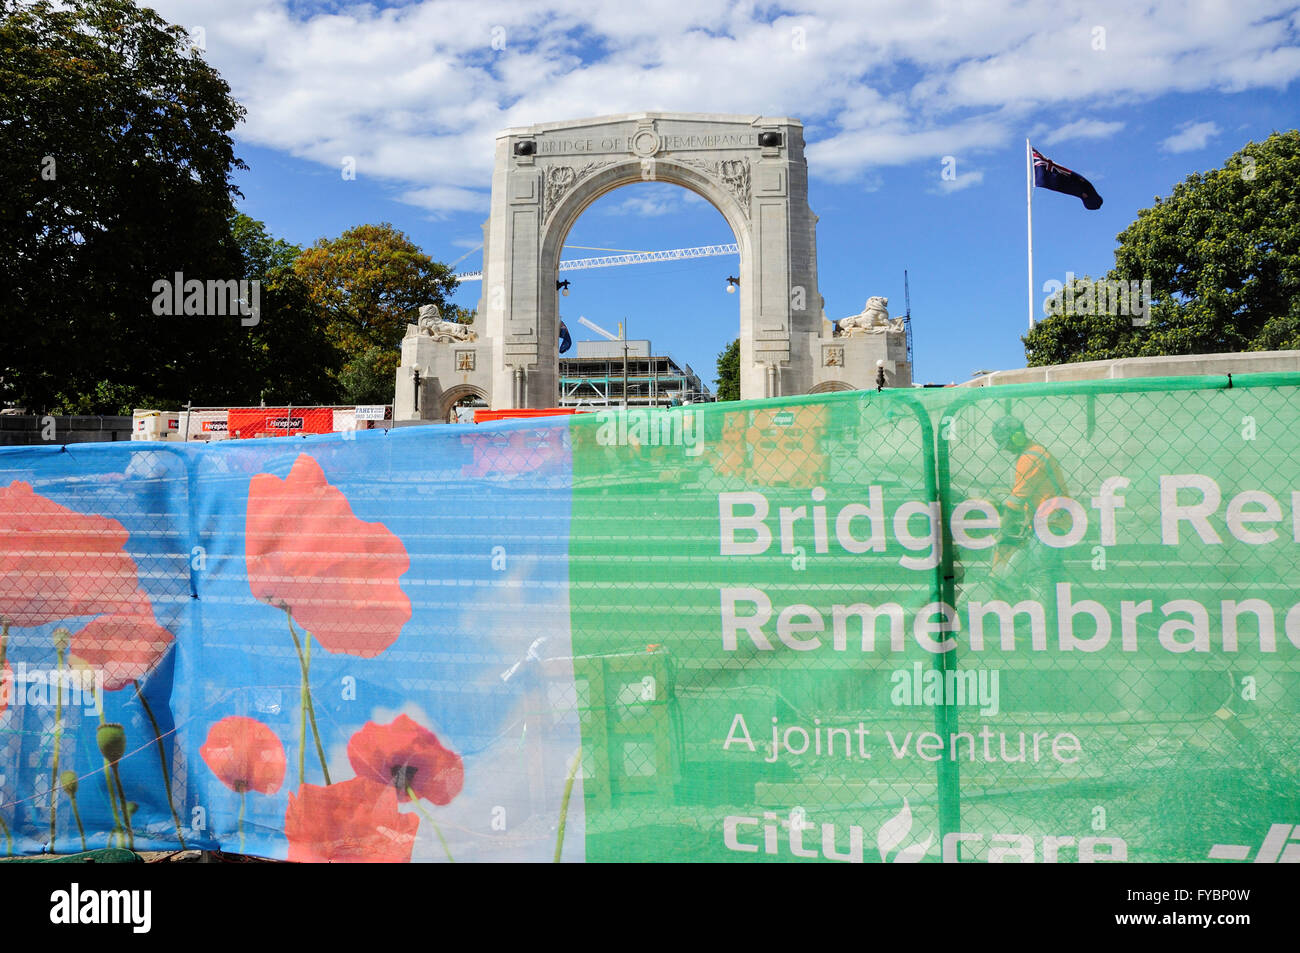 Reconstruction of Bridge of Rememberance after 2011 earthquake, Cashel Street, Christchurch, Canterbury, New Zealand - Stock Image